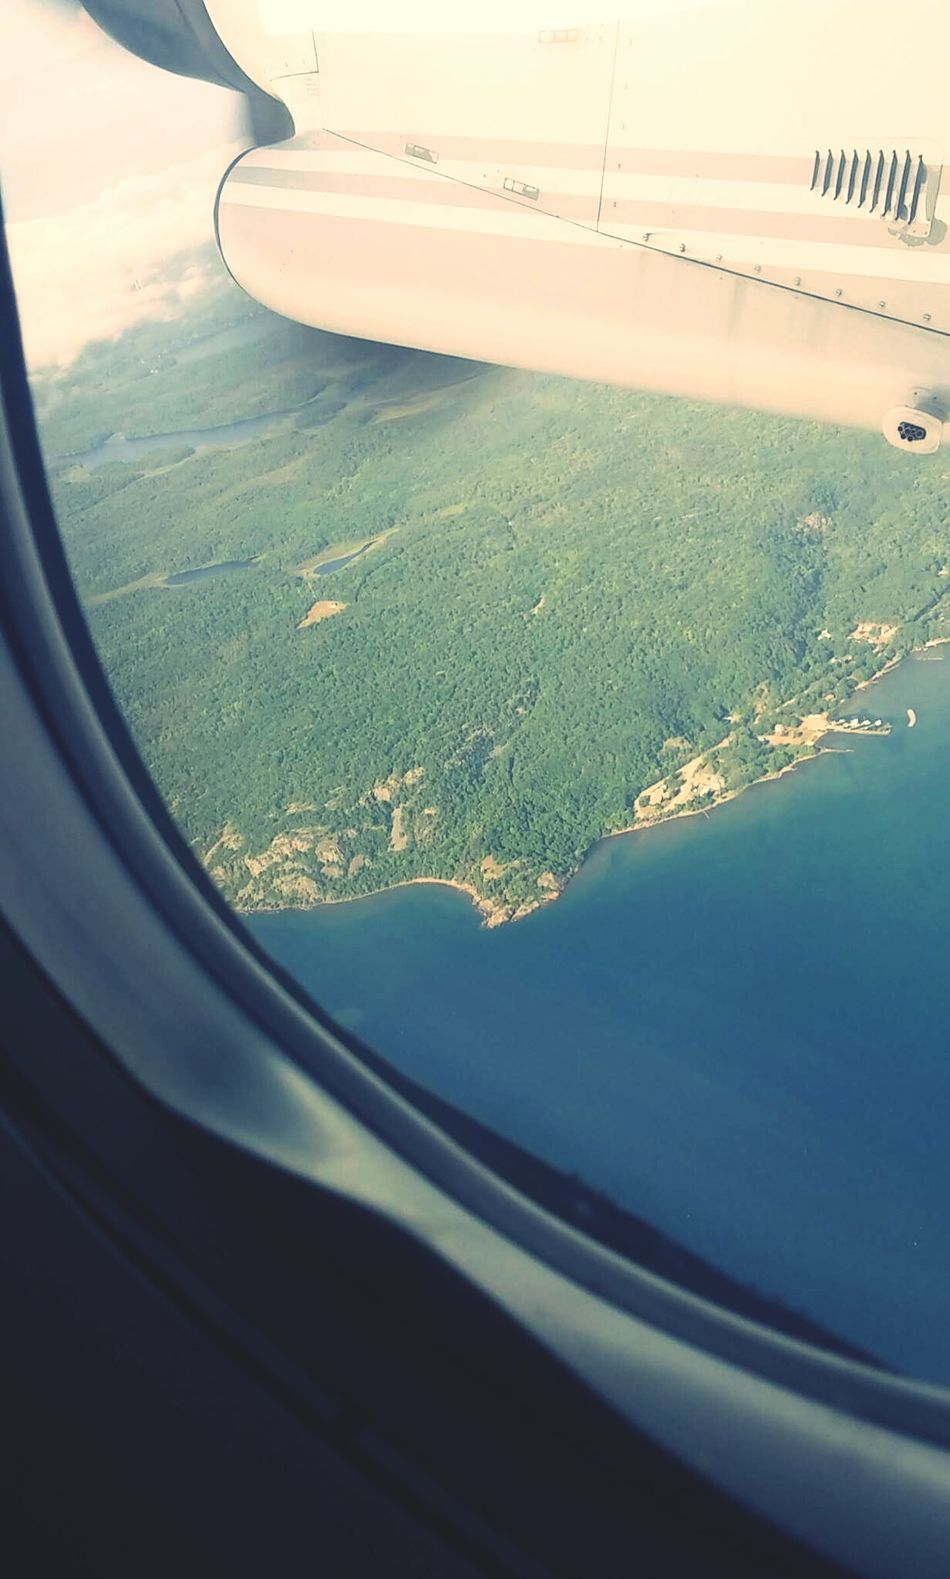 Birds Eye View Airplane View Flying To Toronto Amazing Landscape